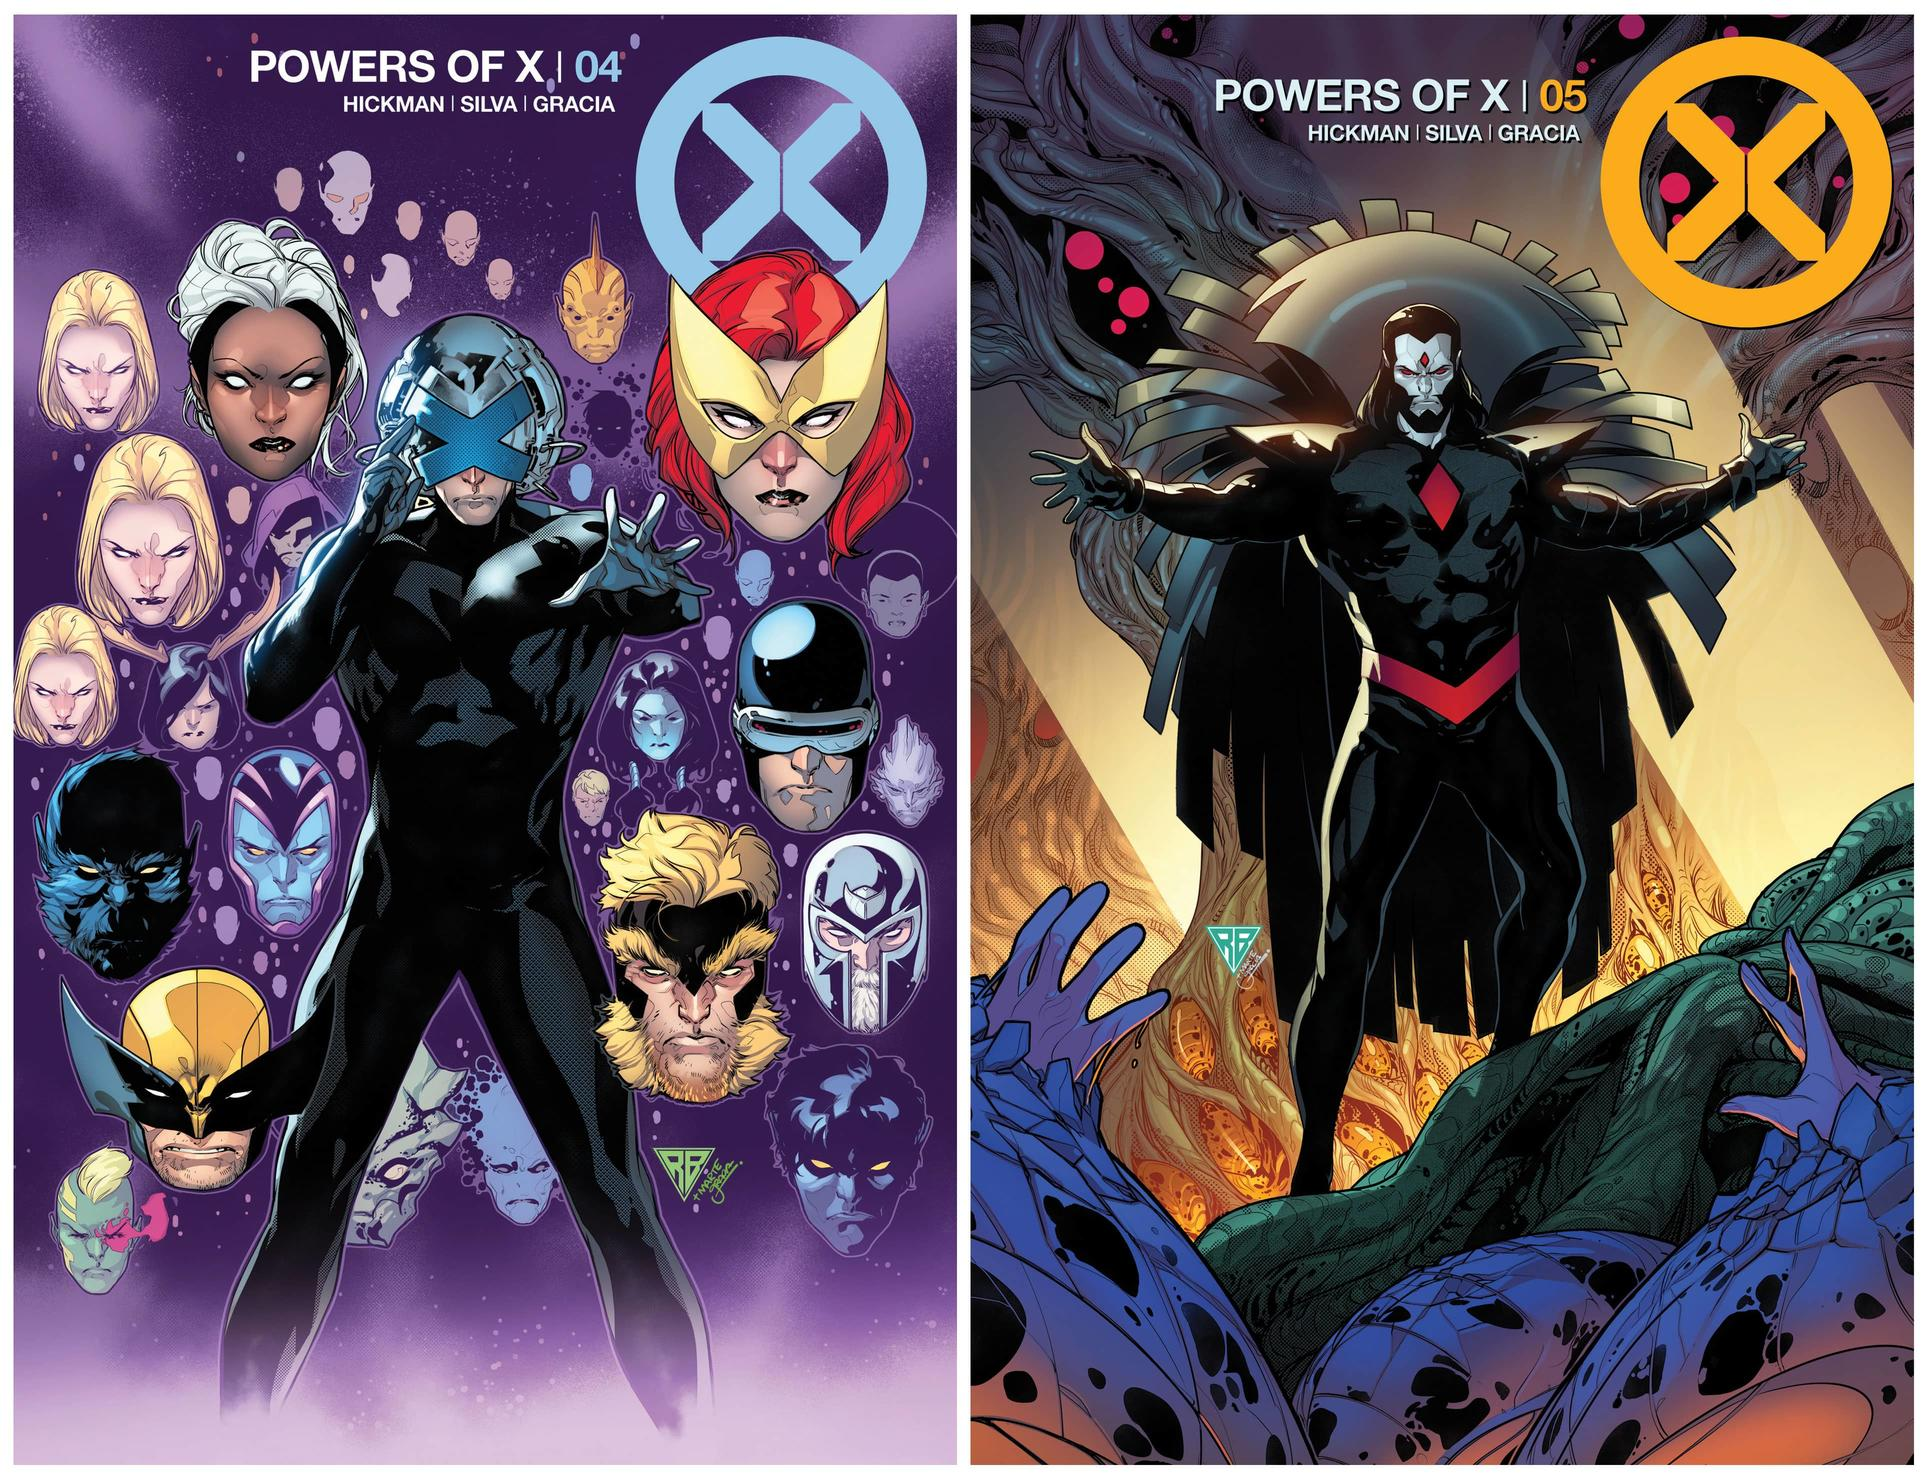 POWERS OF X #4 AND #5